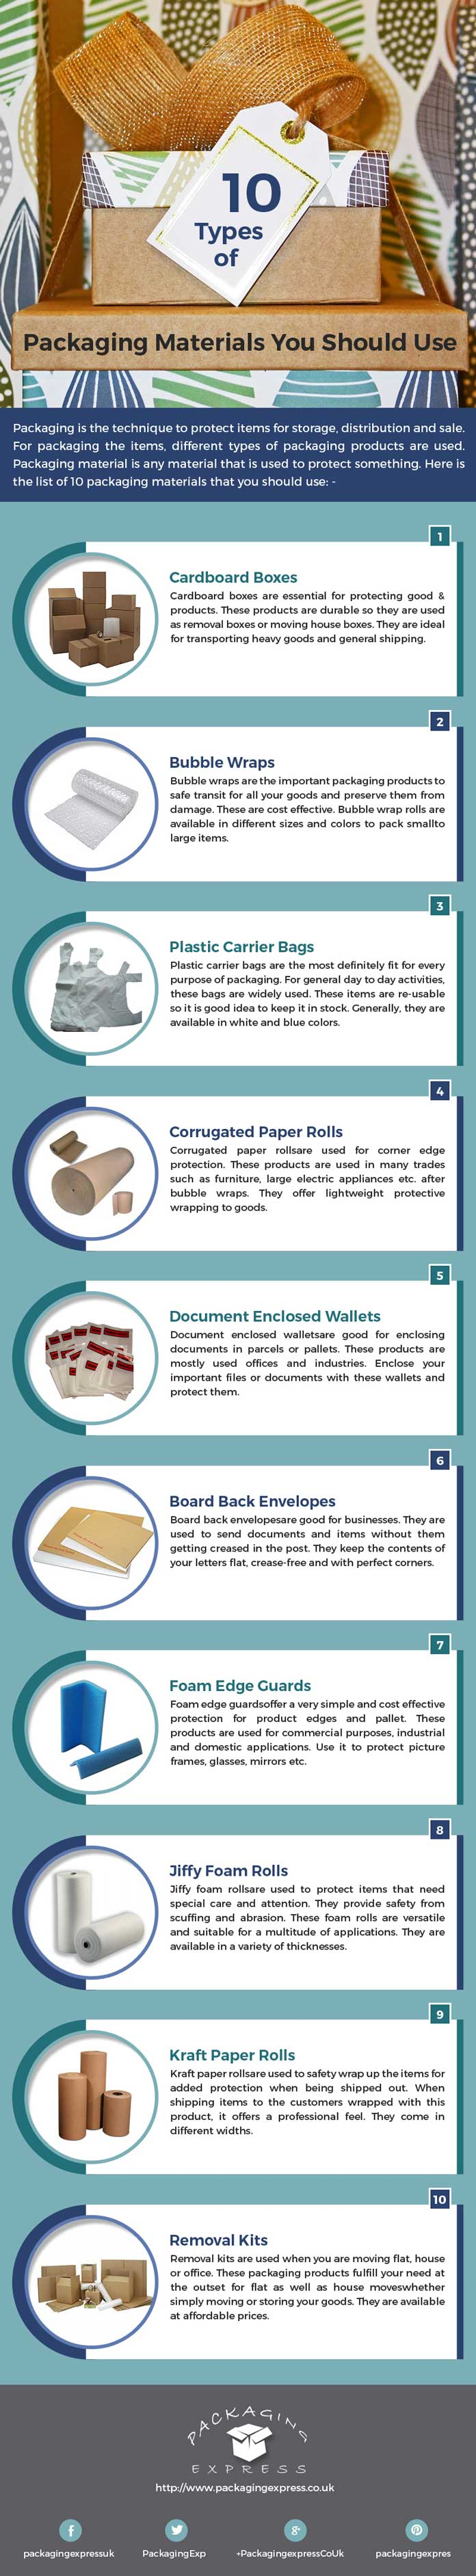 10 Types of Packaging Materials You Should Use [Infographic]